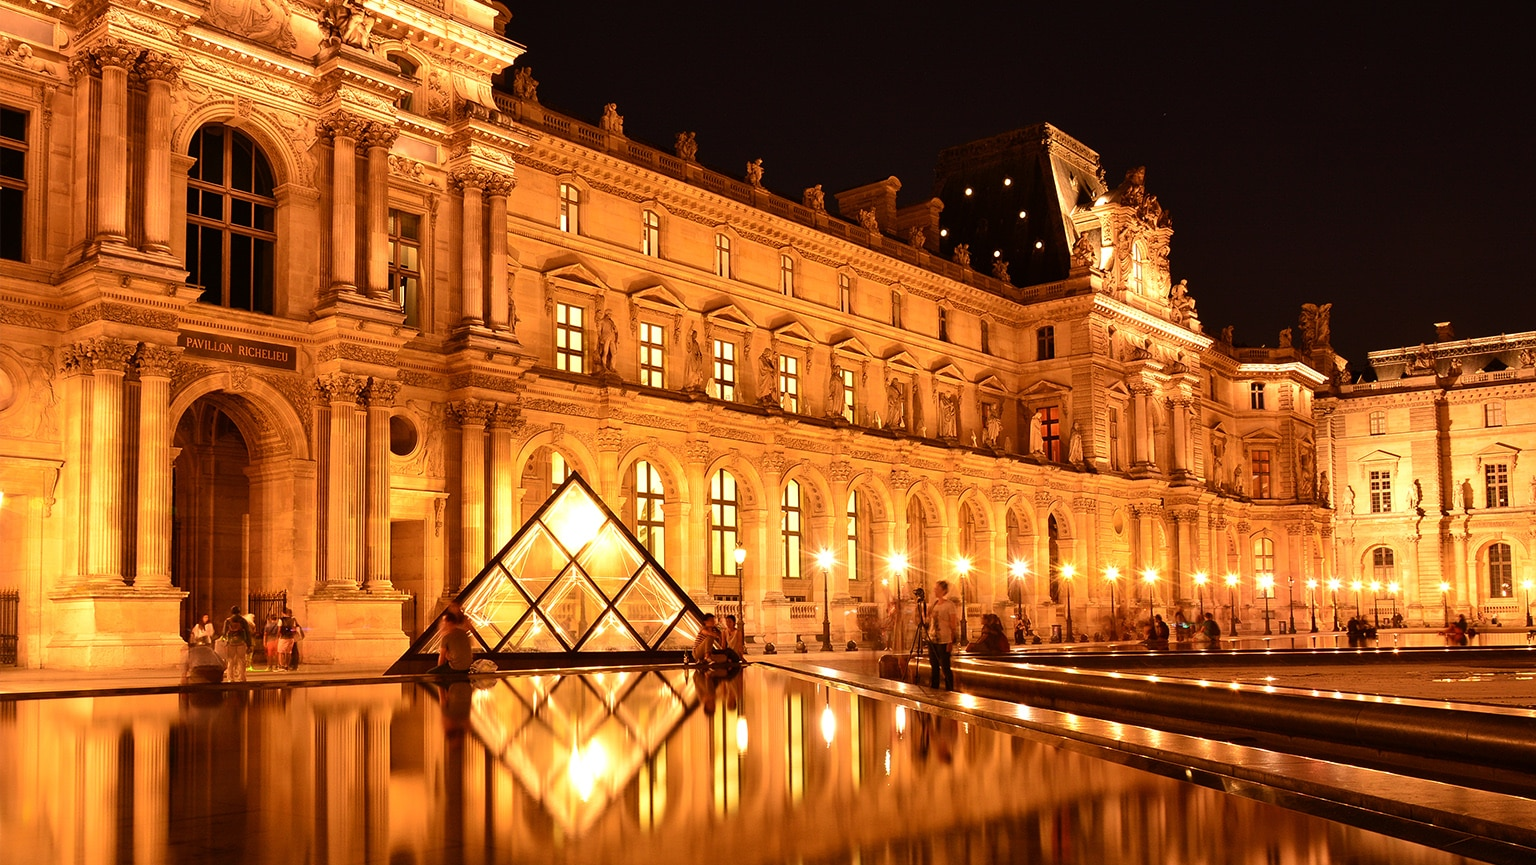 Palace to Museum—The Story of the Louvre